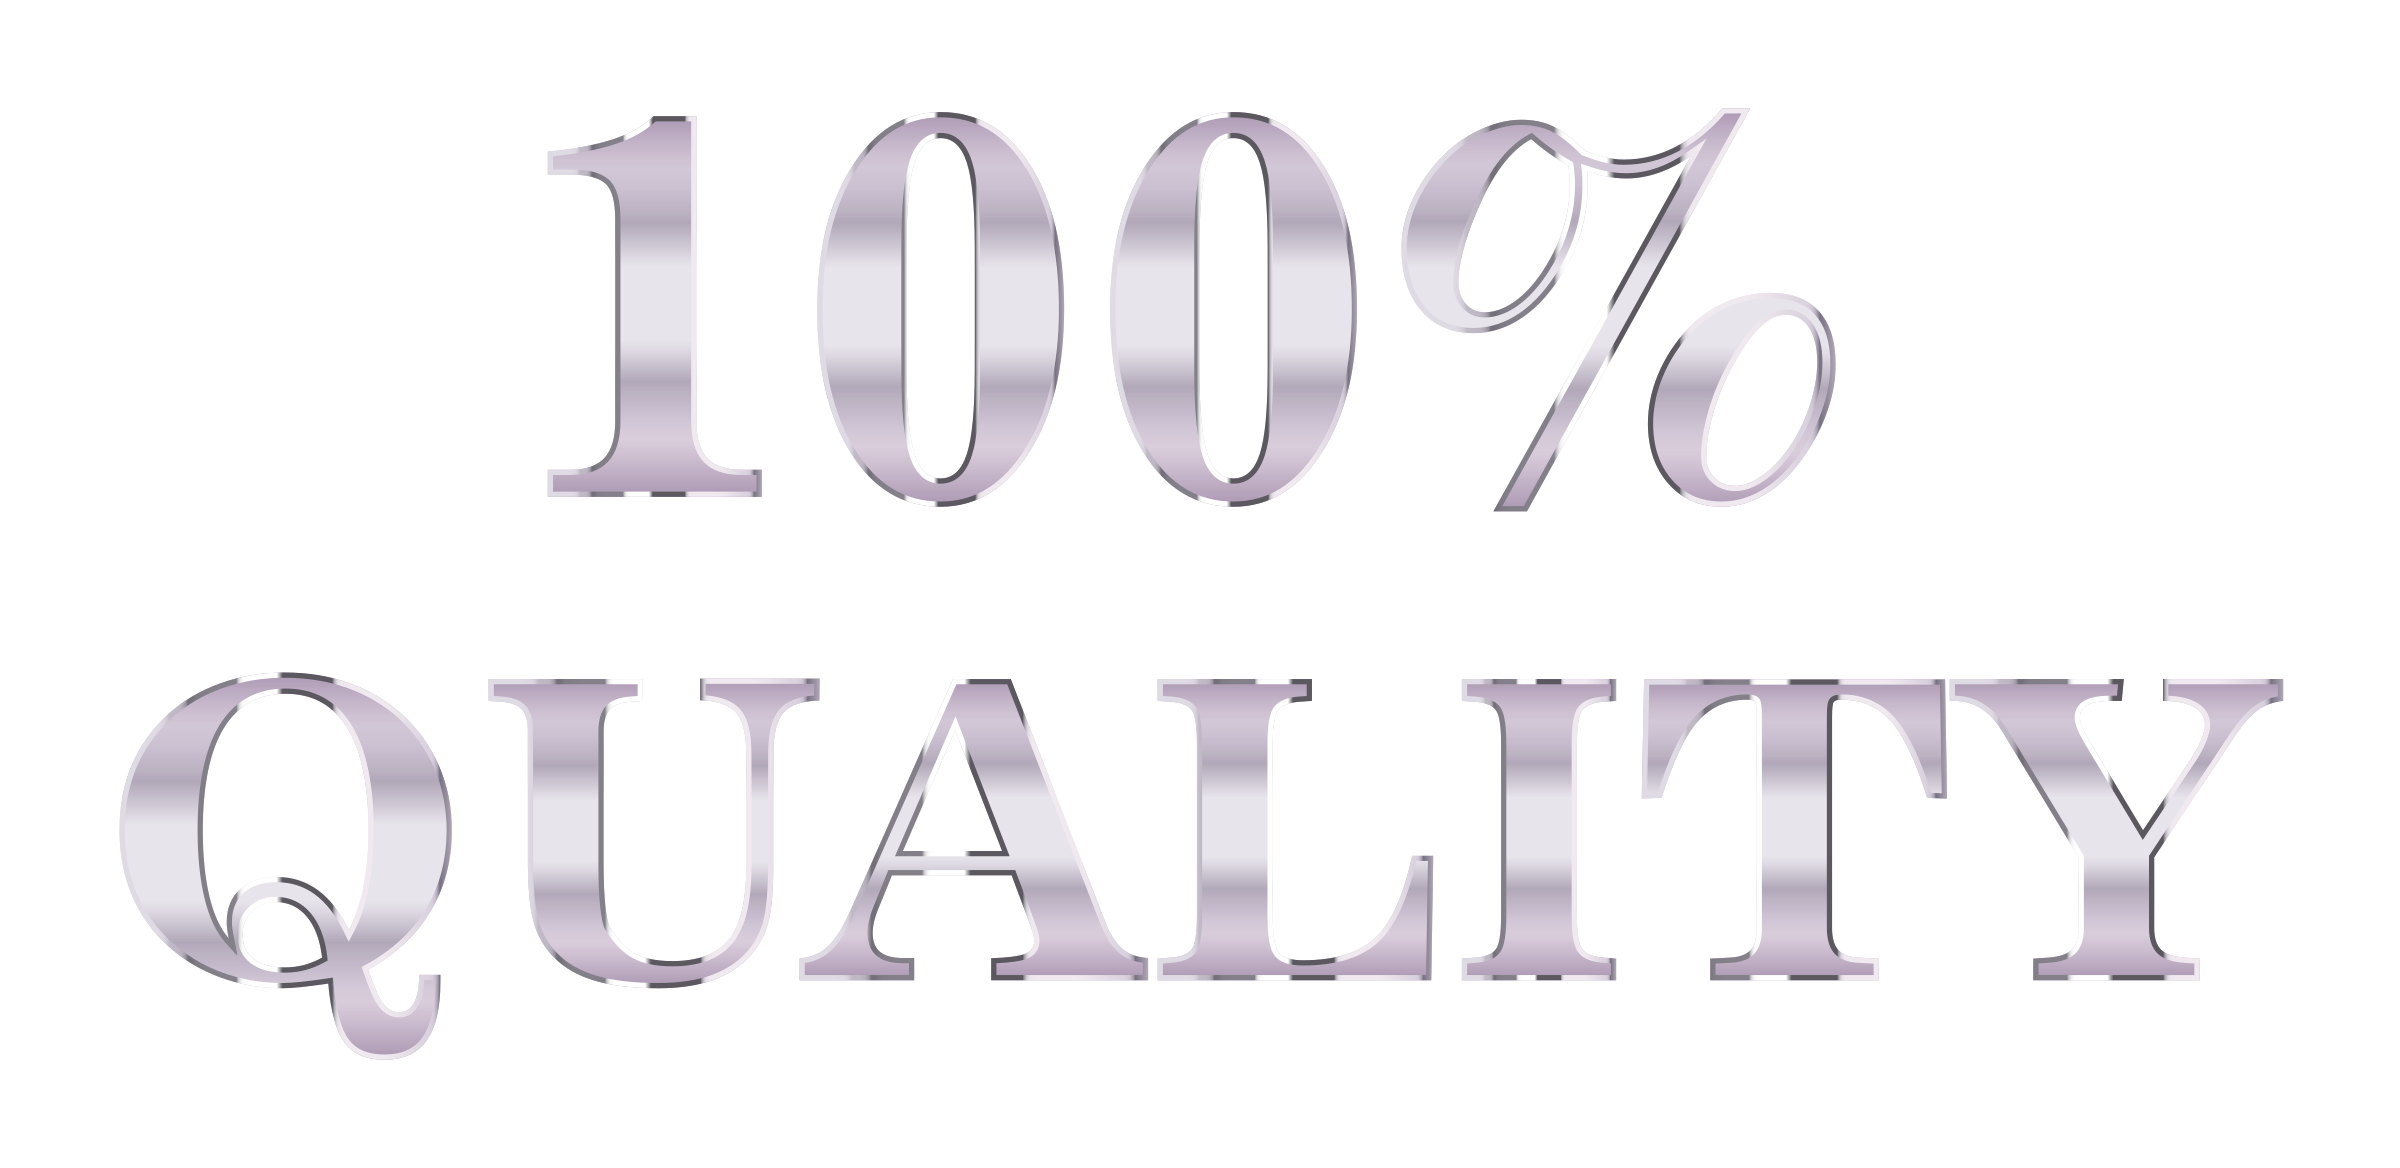 100 Percent Quality Typography Silver No Background by GDJ